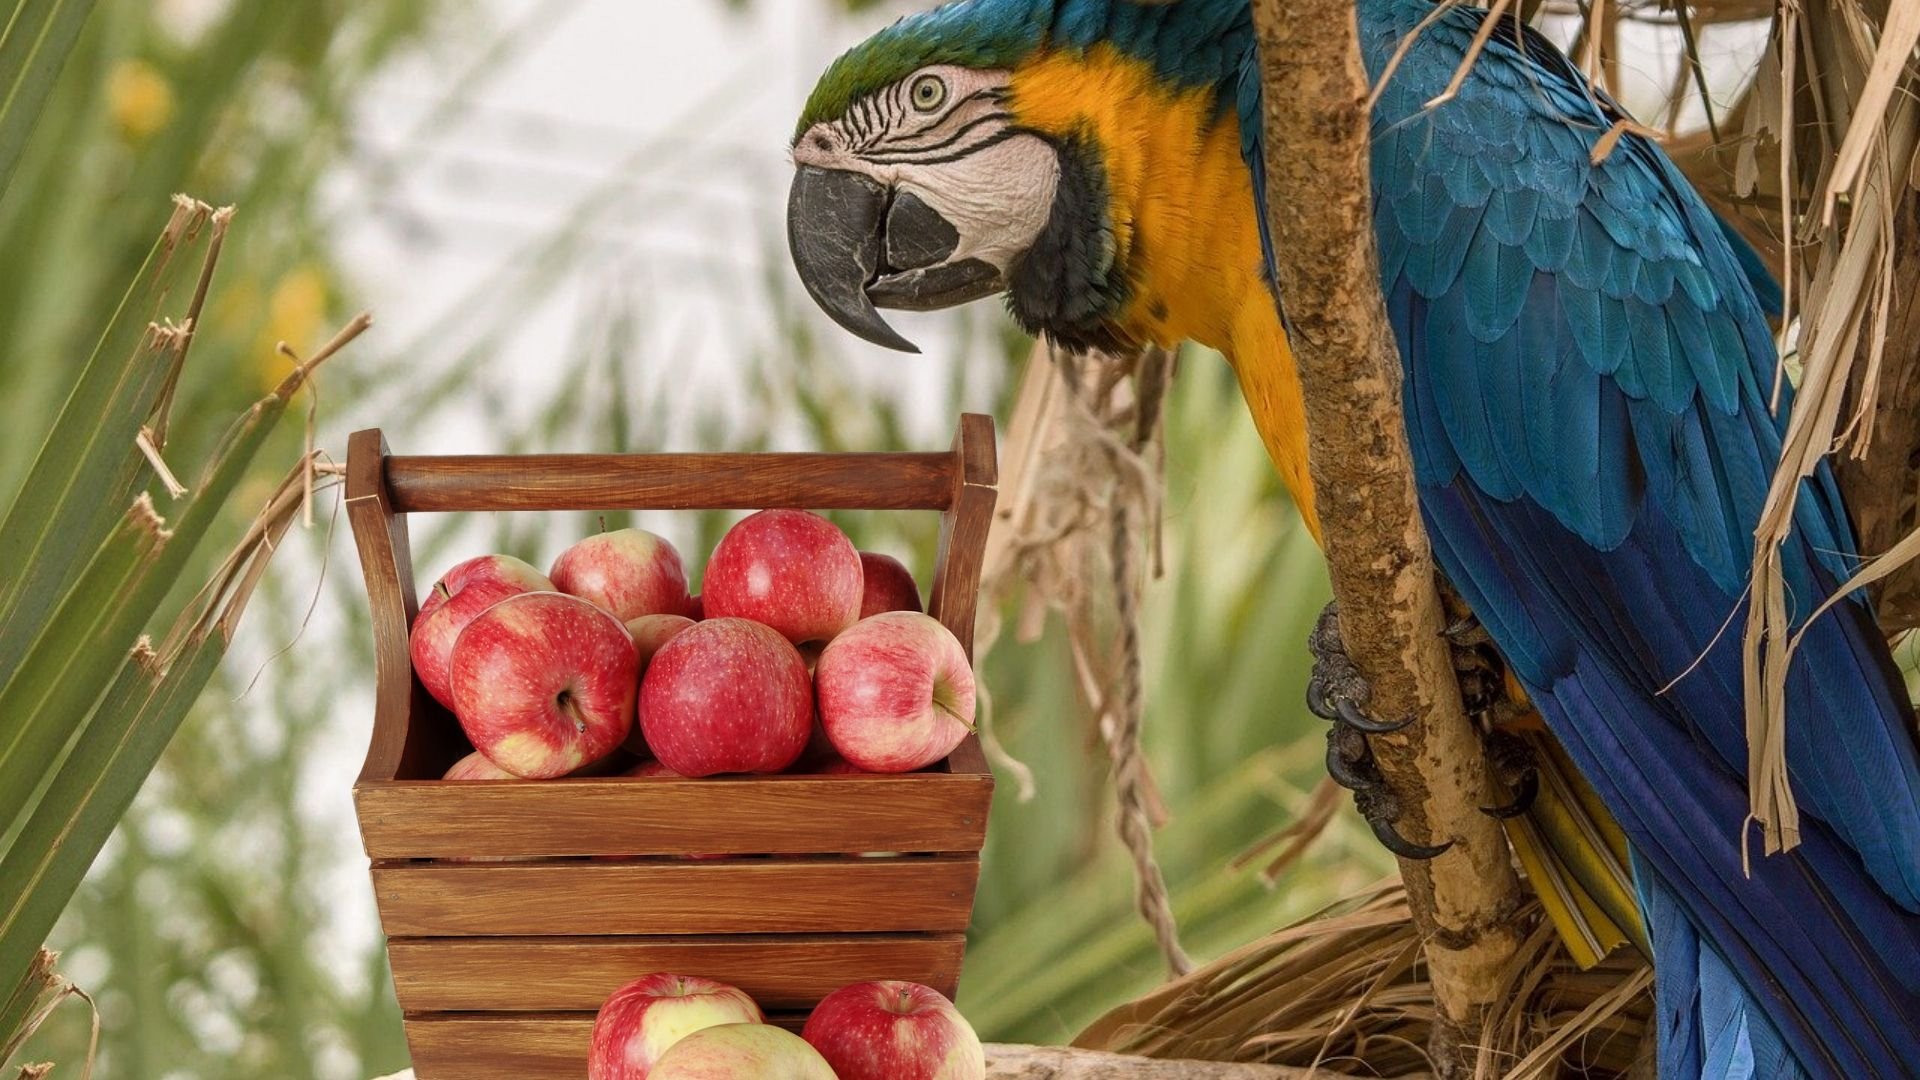 What to Feed Your Parrot and Other Pet Birds